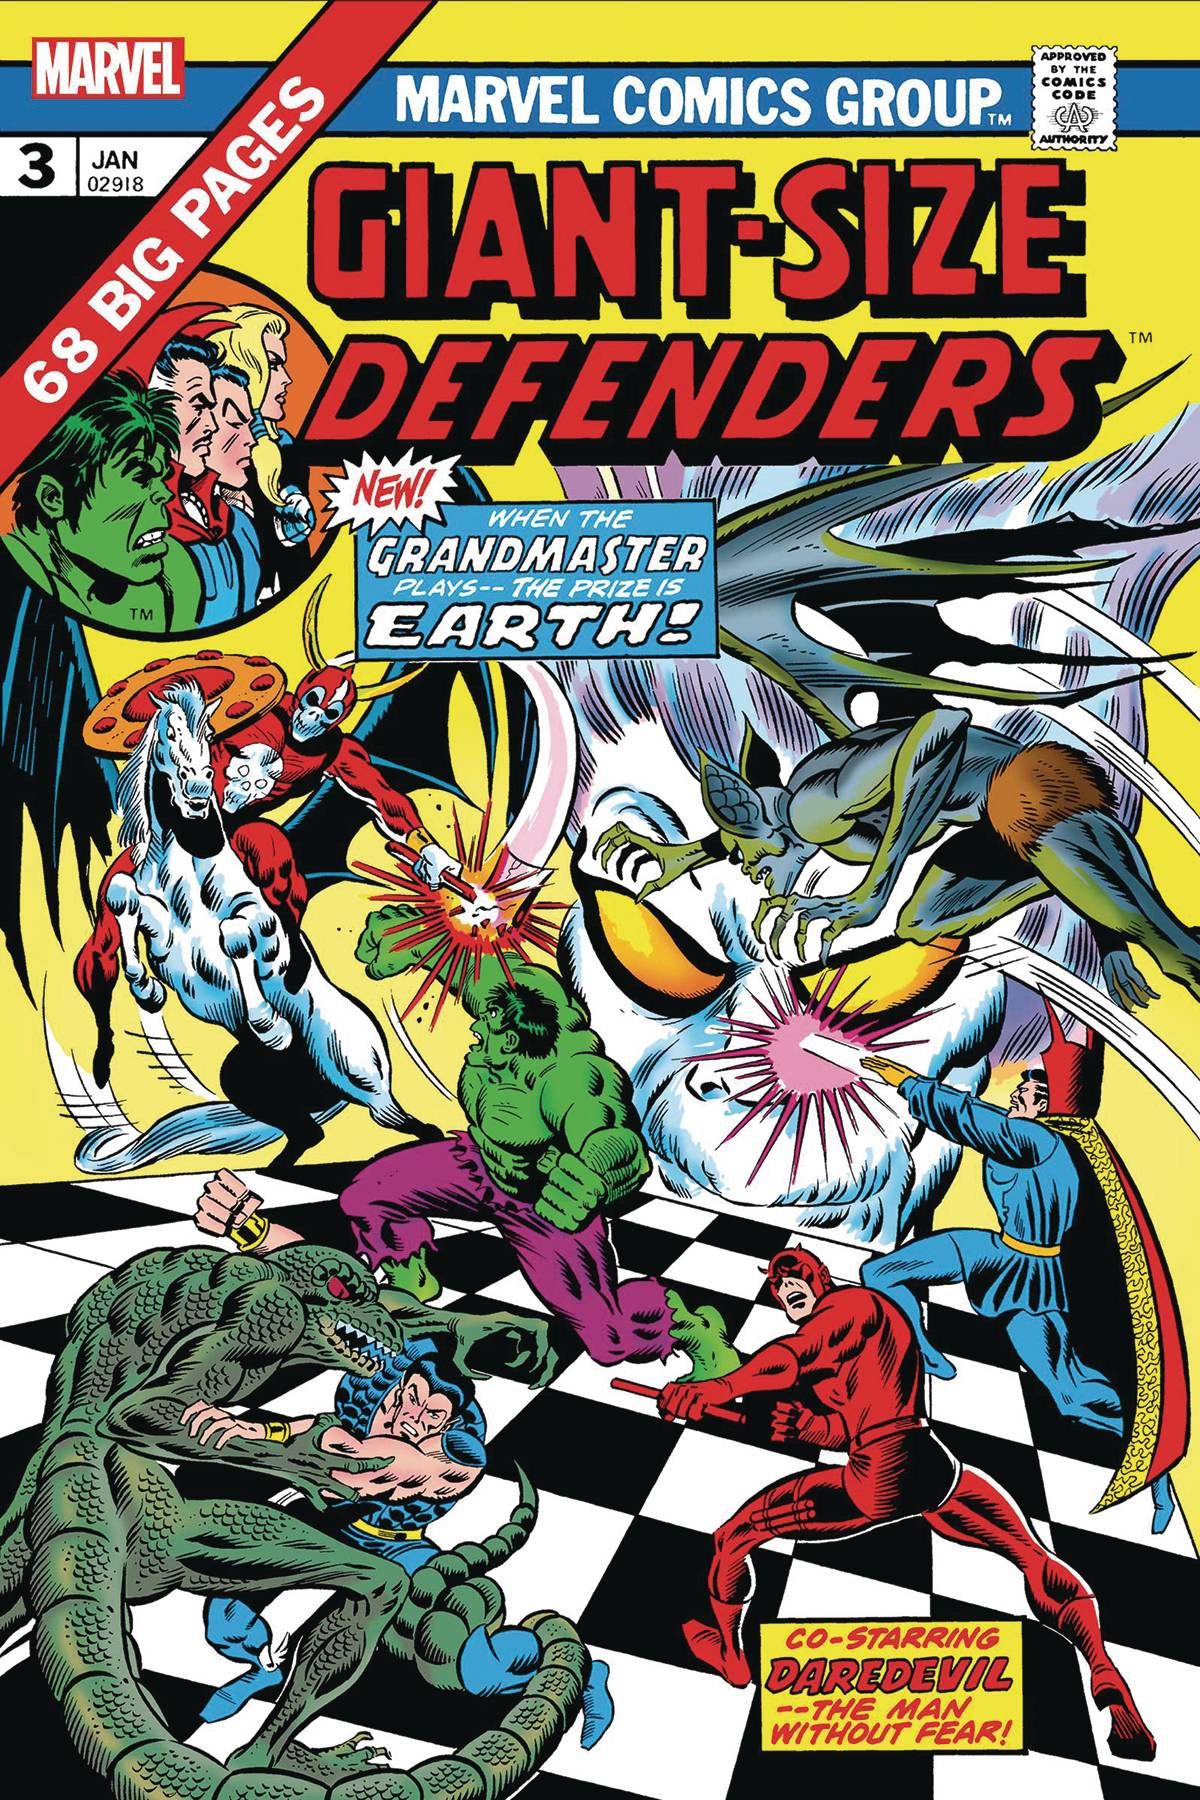 Giant-Size Defenders #3 (2019)